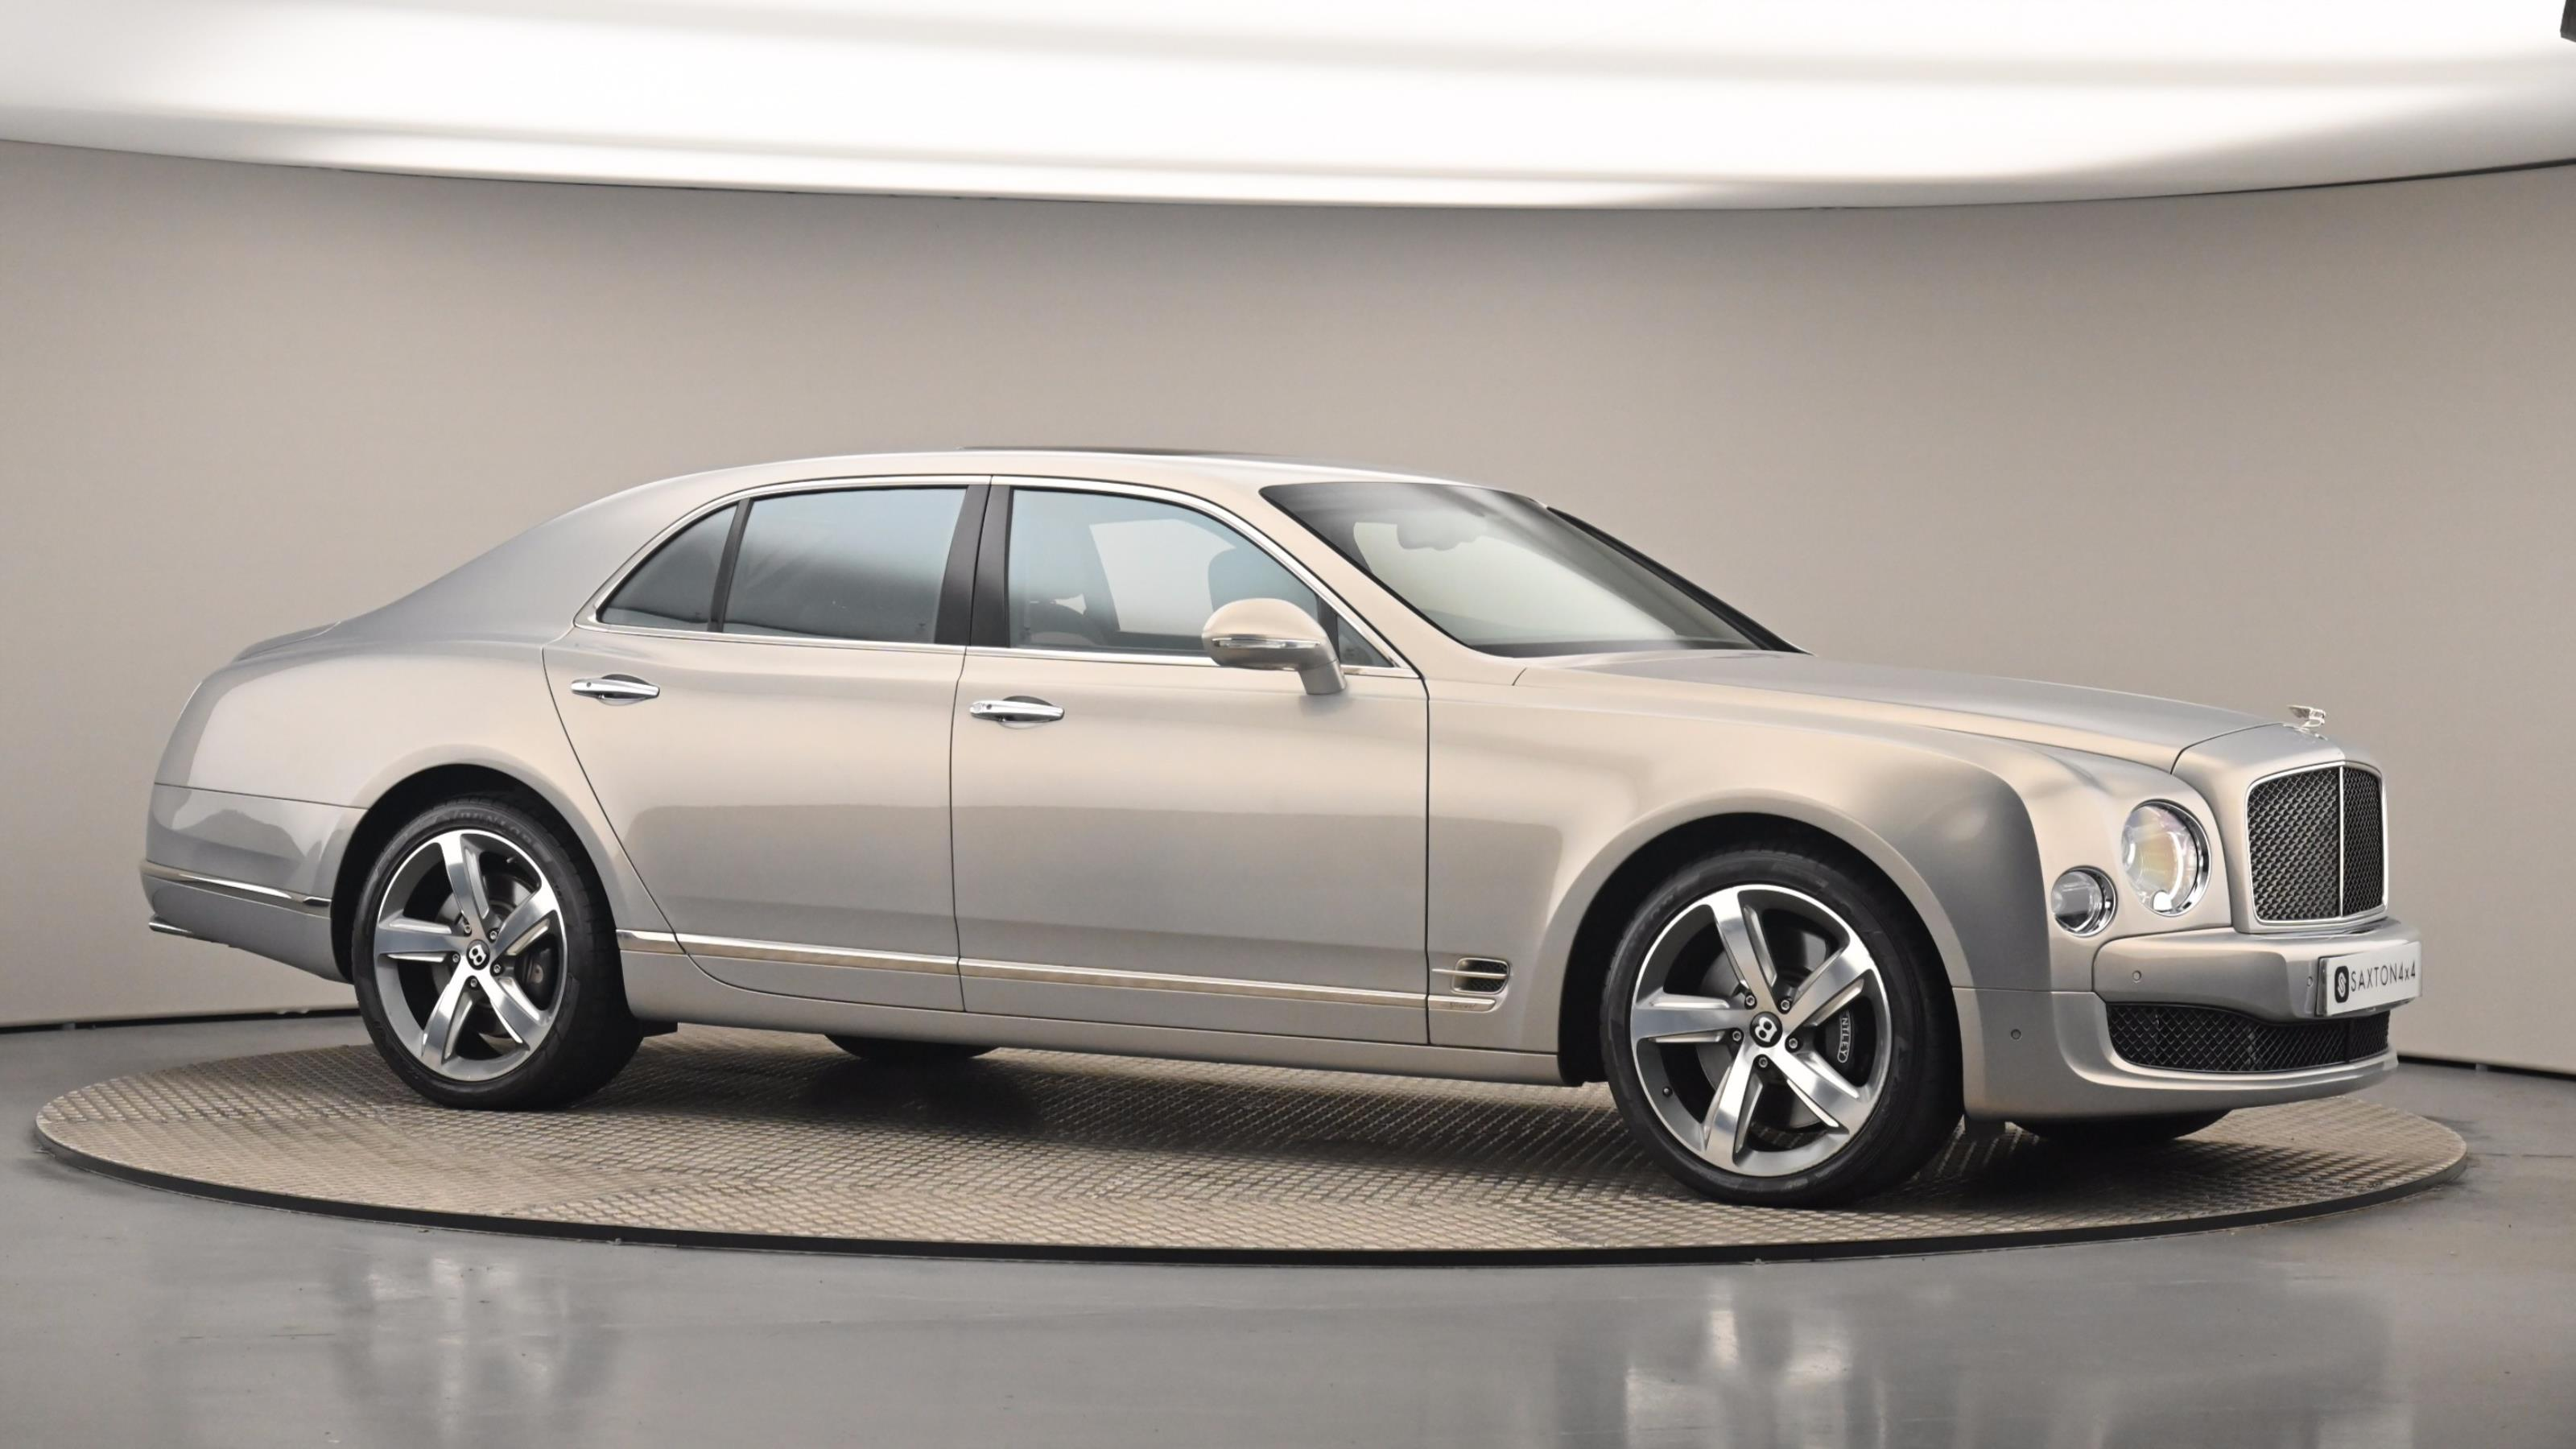 Used 2016 Bentley MULSANNE 6.8 V8 Speed 4dr Auto GREY at Saxton4x4